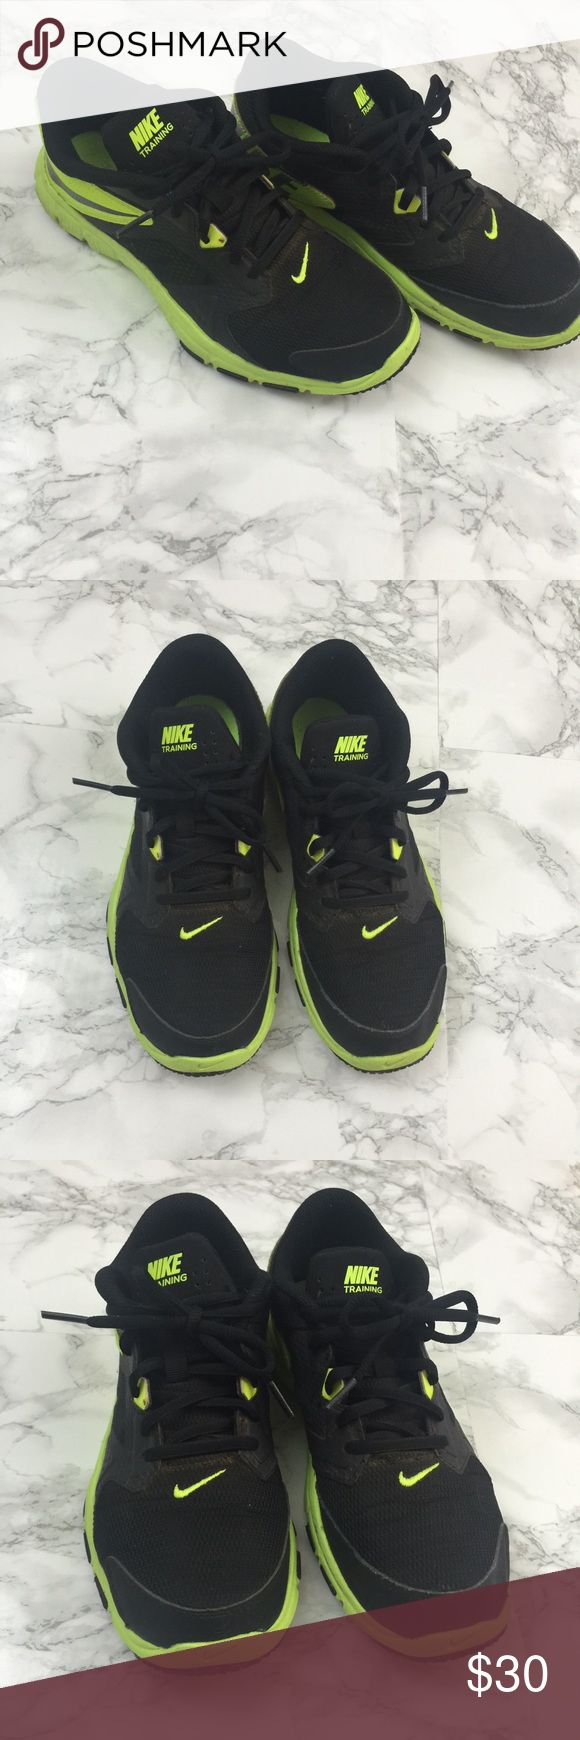 Boys Nike Training Shoes Black Youth Size 6 Nike Training Boys shoe, size 6Y. See pictures for details. May require some cleaning. Nike Shoes Sneakers